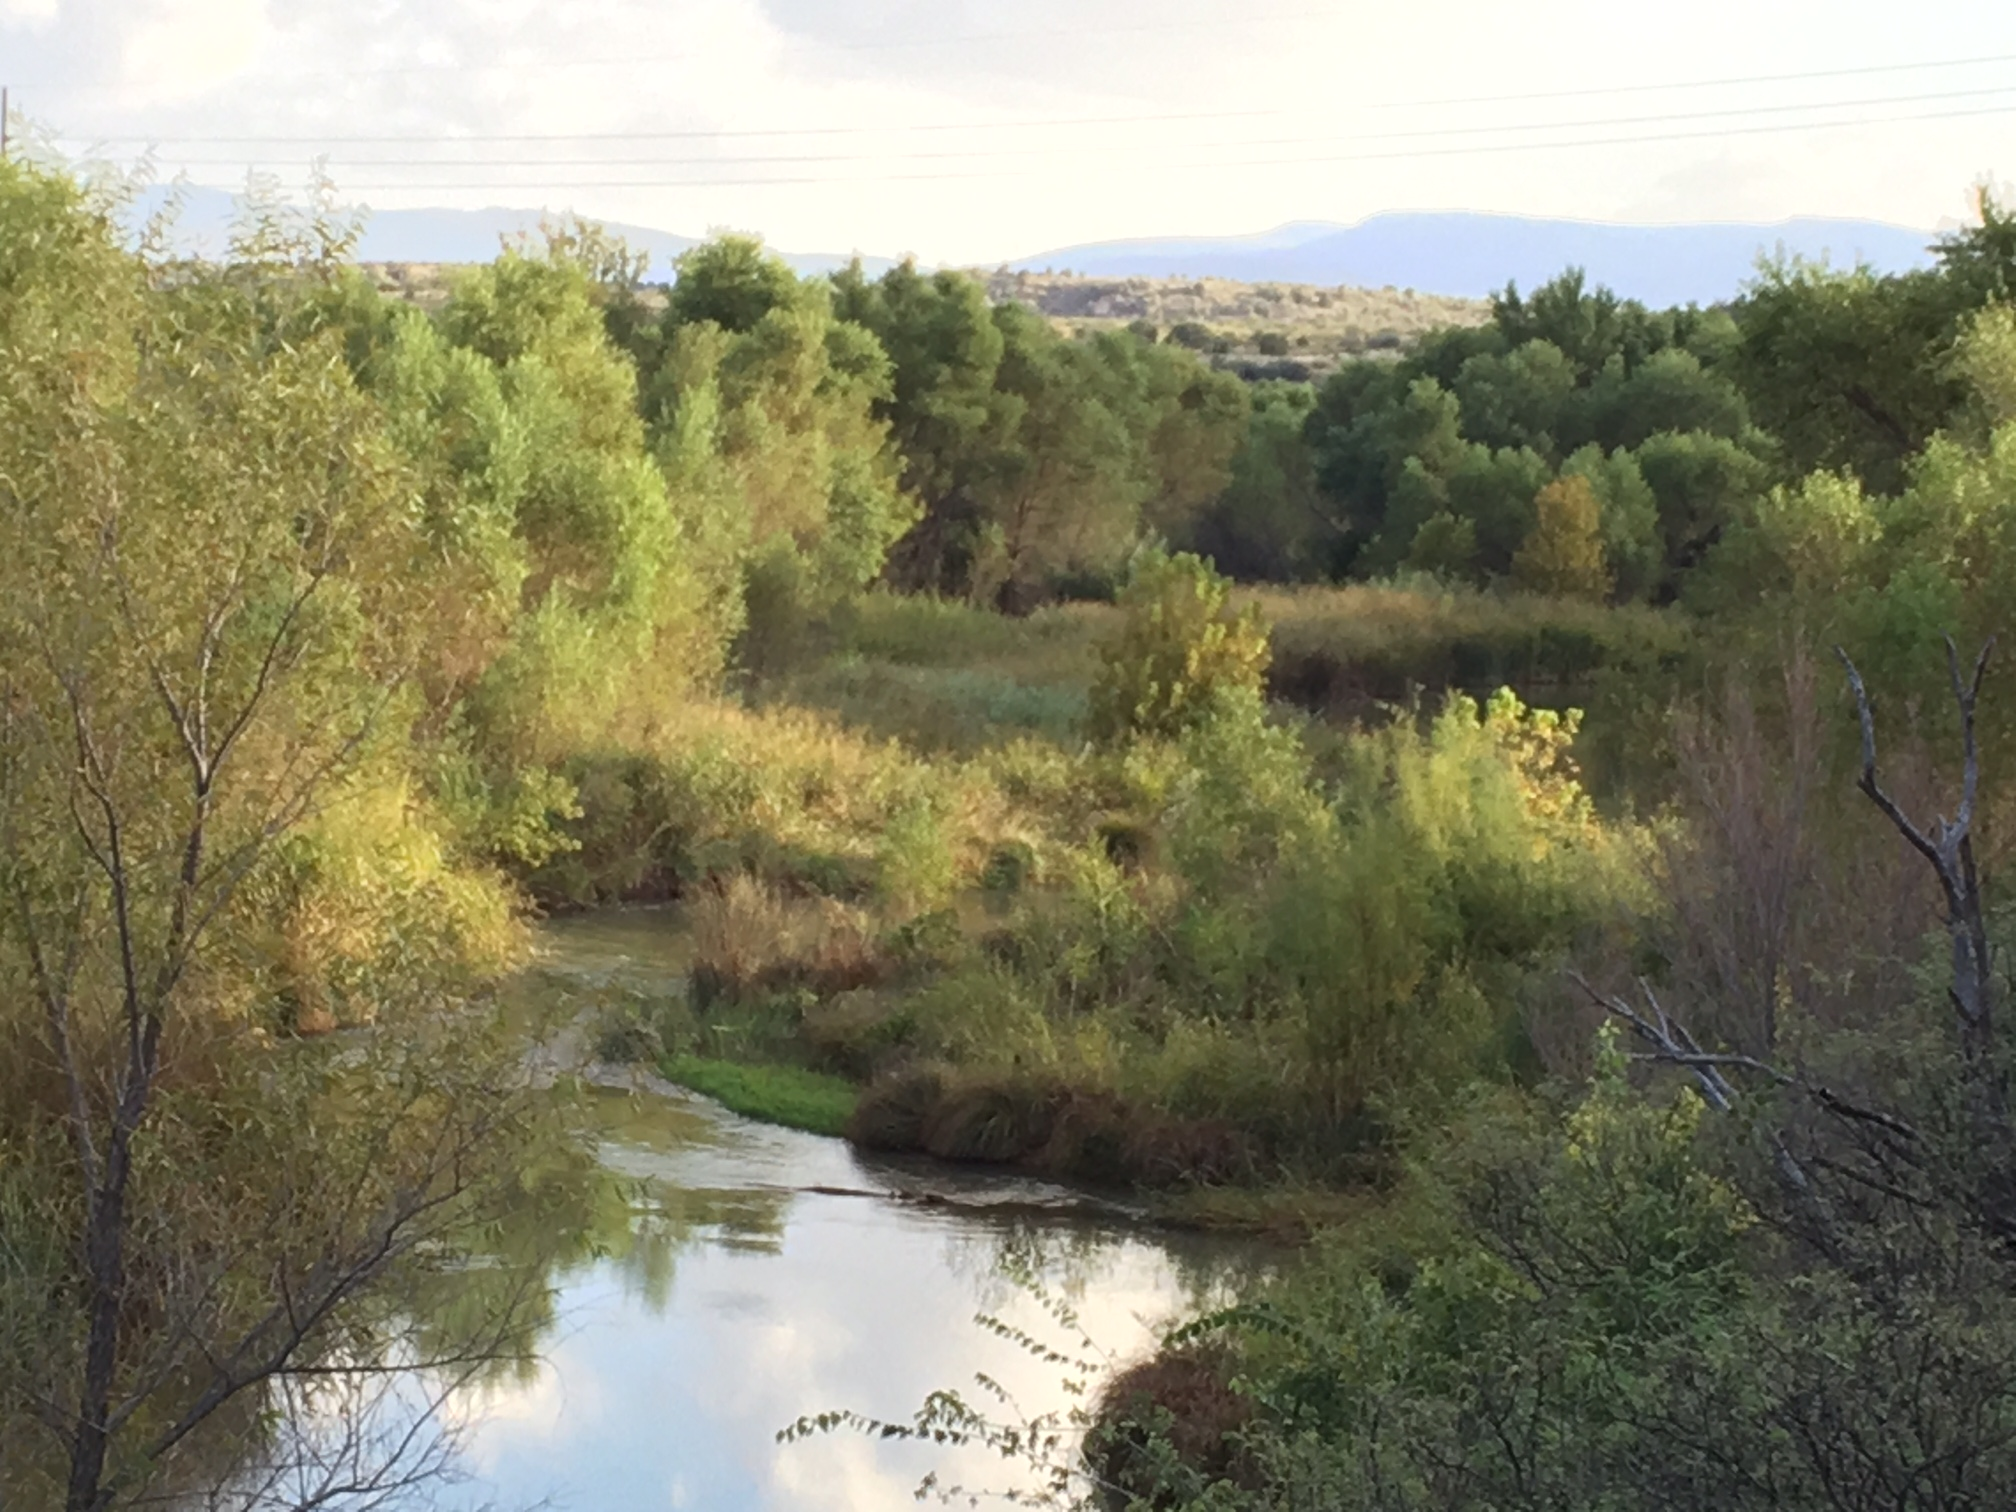 The view from the Dick family home on the Verde River outside Cottonwood, Arizona. (Jason Dick/CQ Roll Call)